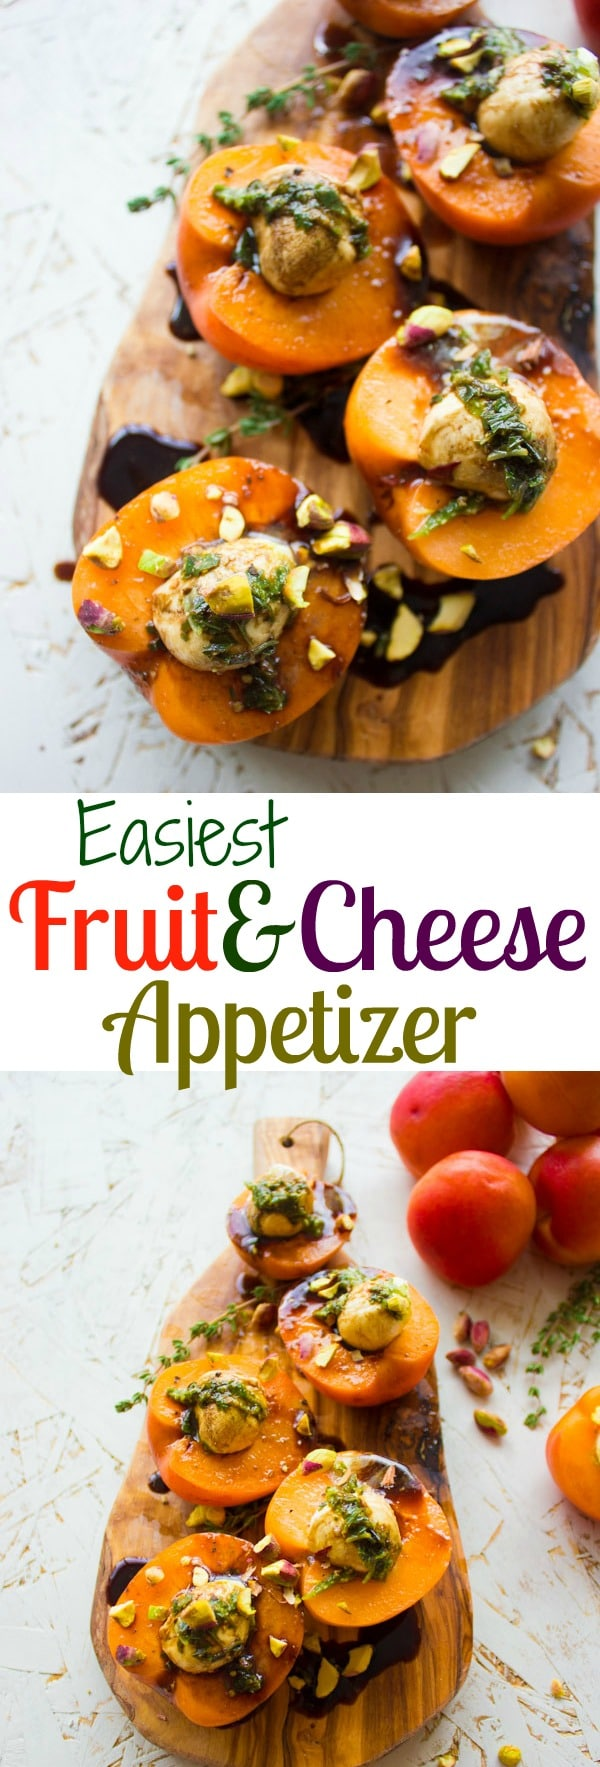 These mozzarella stuffed apricots are a quick and easy appetizer! An elegant, timeless pairing of fruit and cheese that will leave everyone impressed!#appetizer, #apricotrecipes, #fingerfoodrecipes, #partyfood